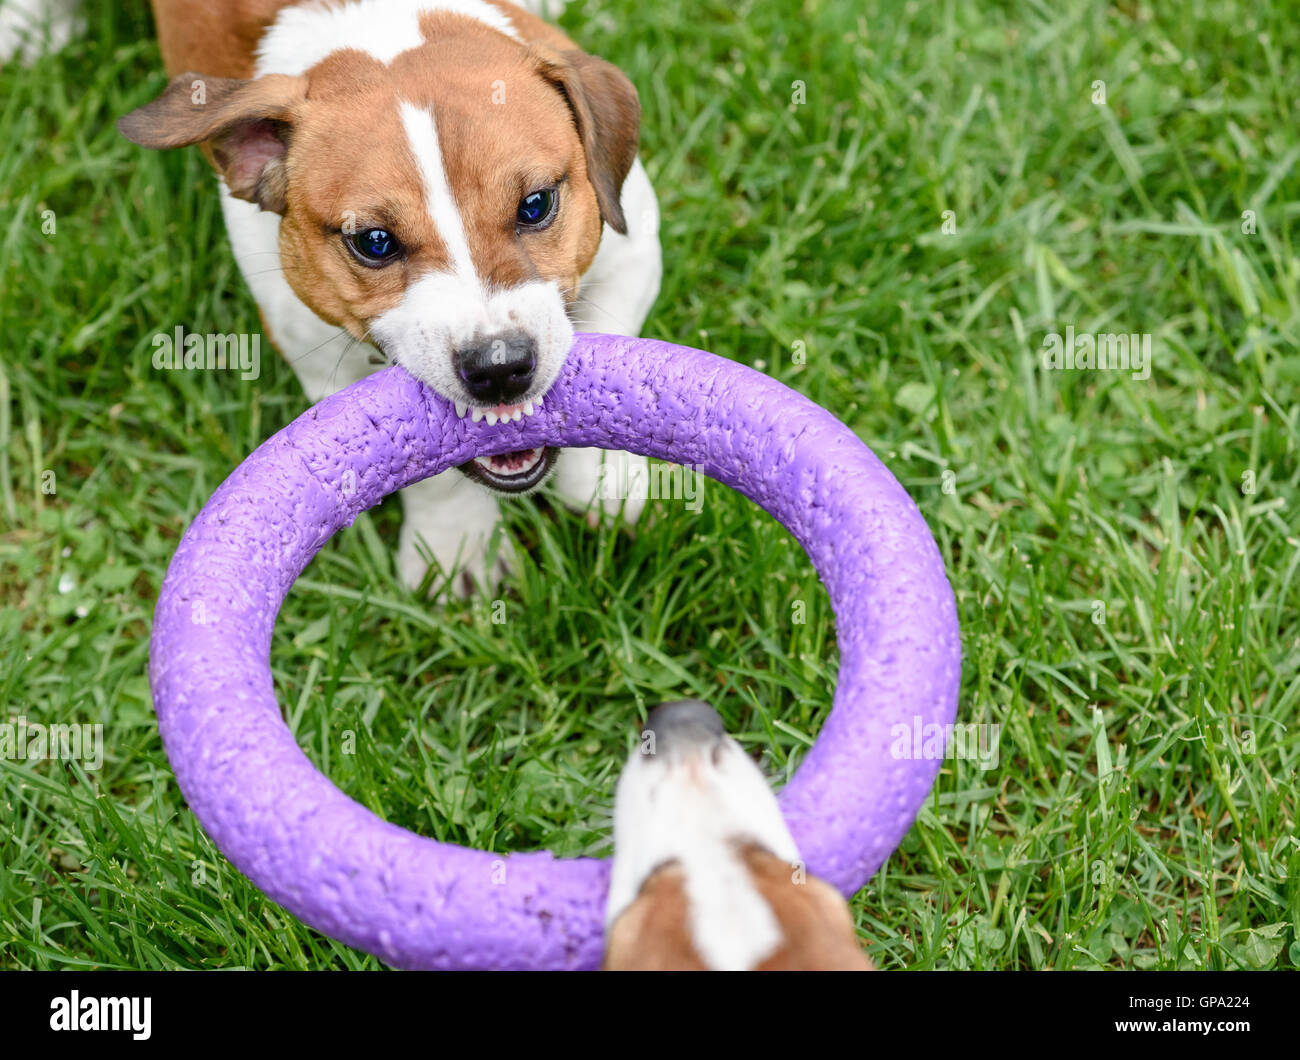 Angry dog pulling toy playing tug-of-war game - Stock Image